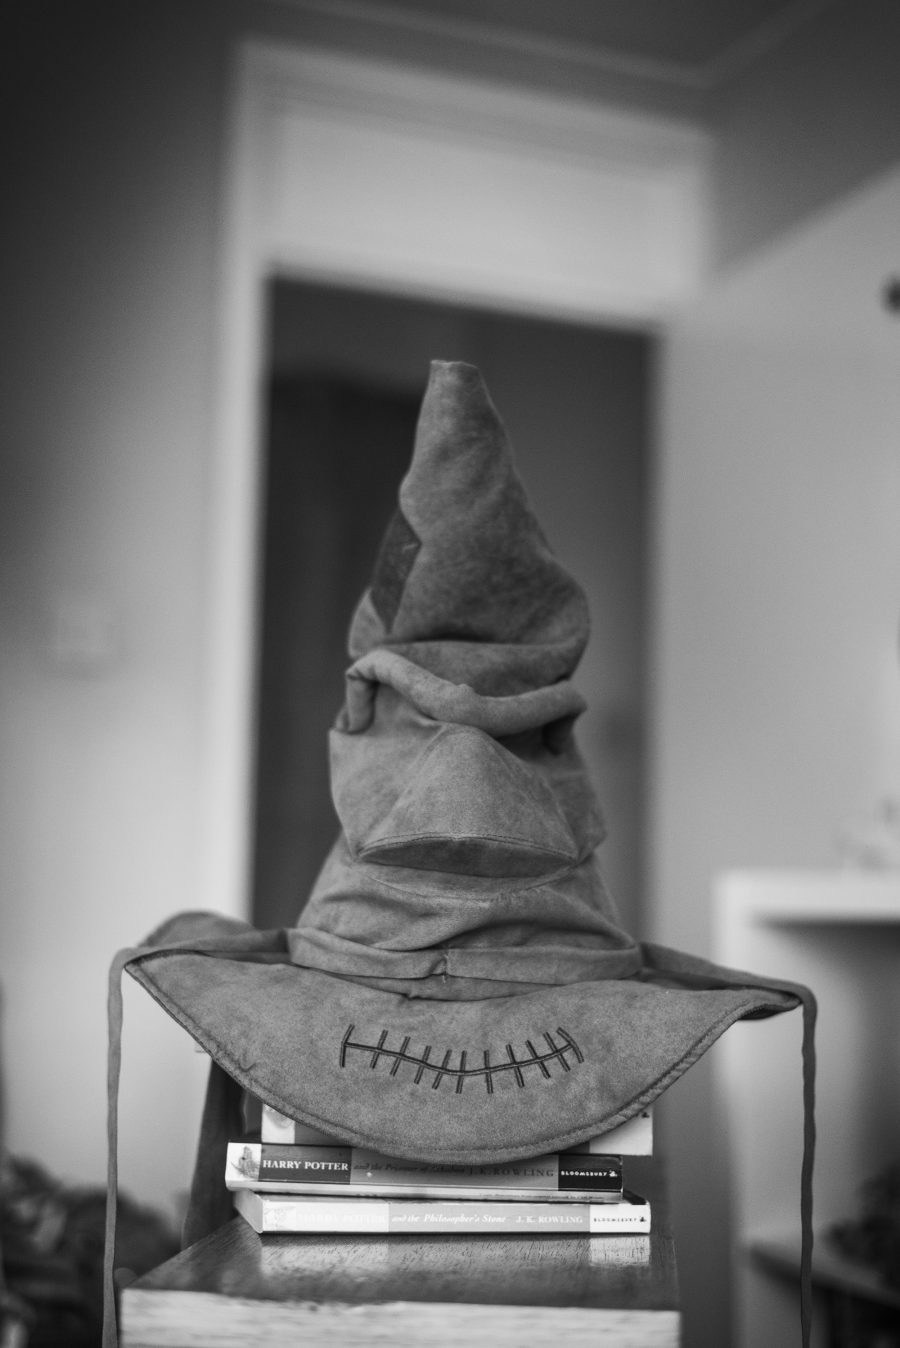 Hogwarts harry potter sorting hat toy